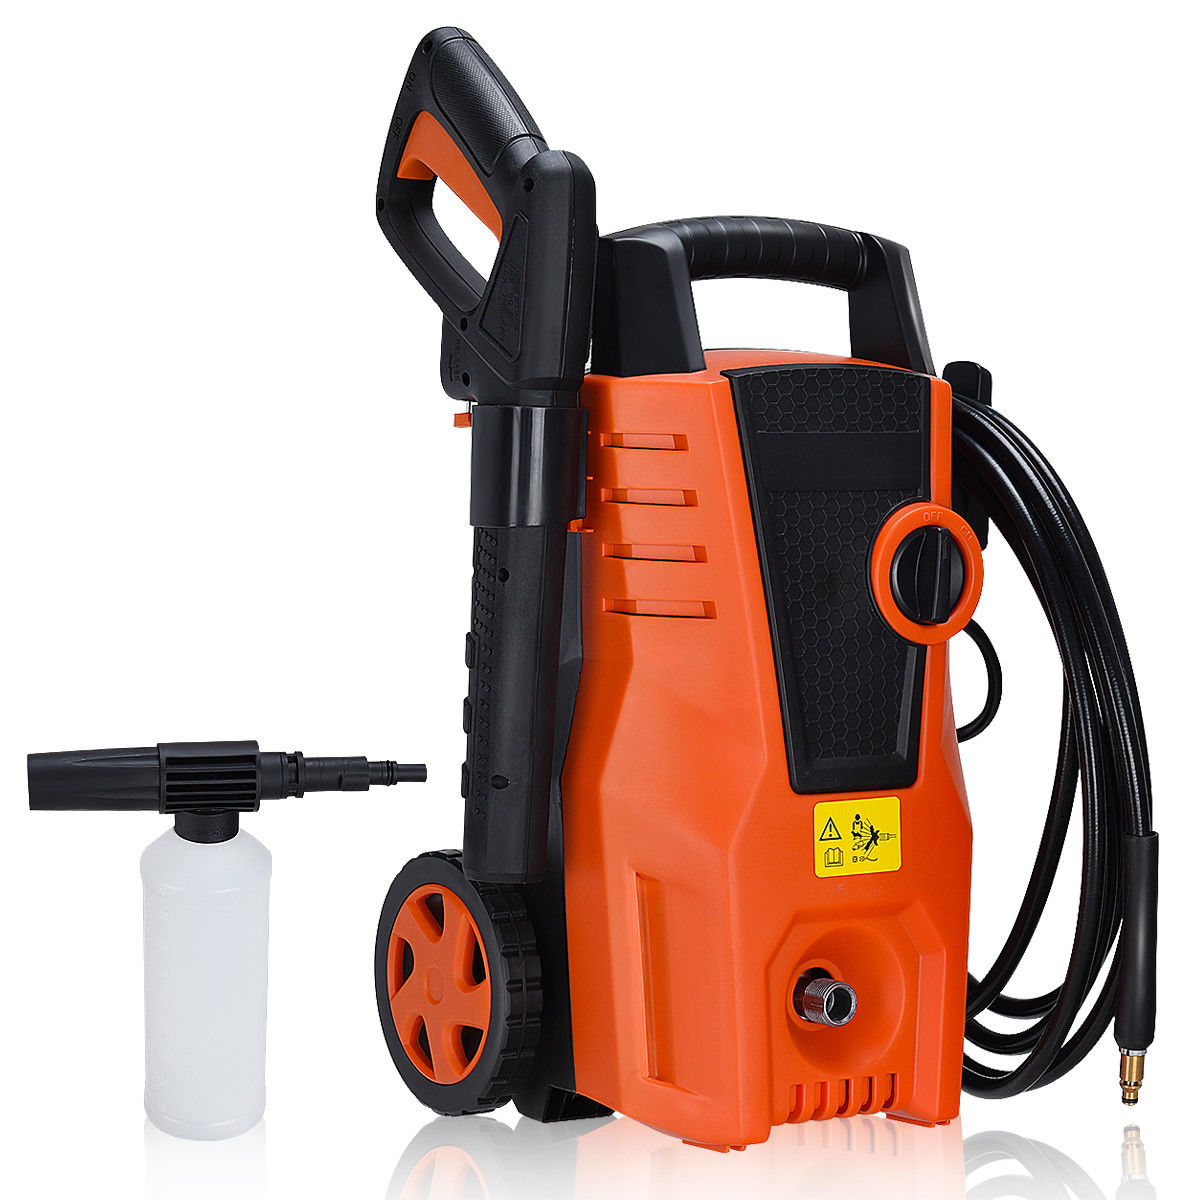 Costway 1400PSI Electric High Pressure Washer 2000W 1.6GPM Sprayer Cleaner Machine by Costway